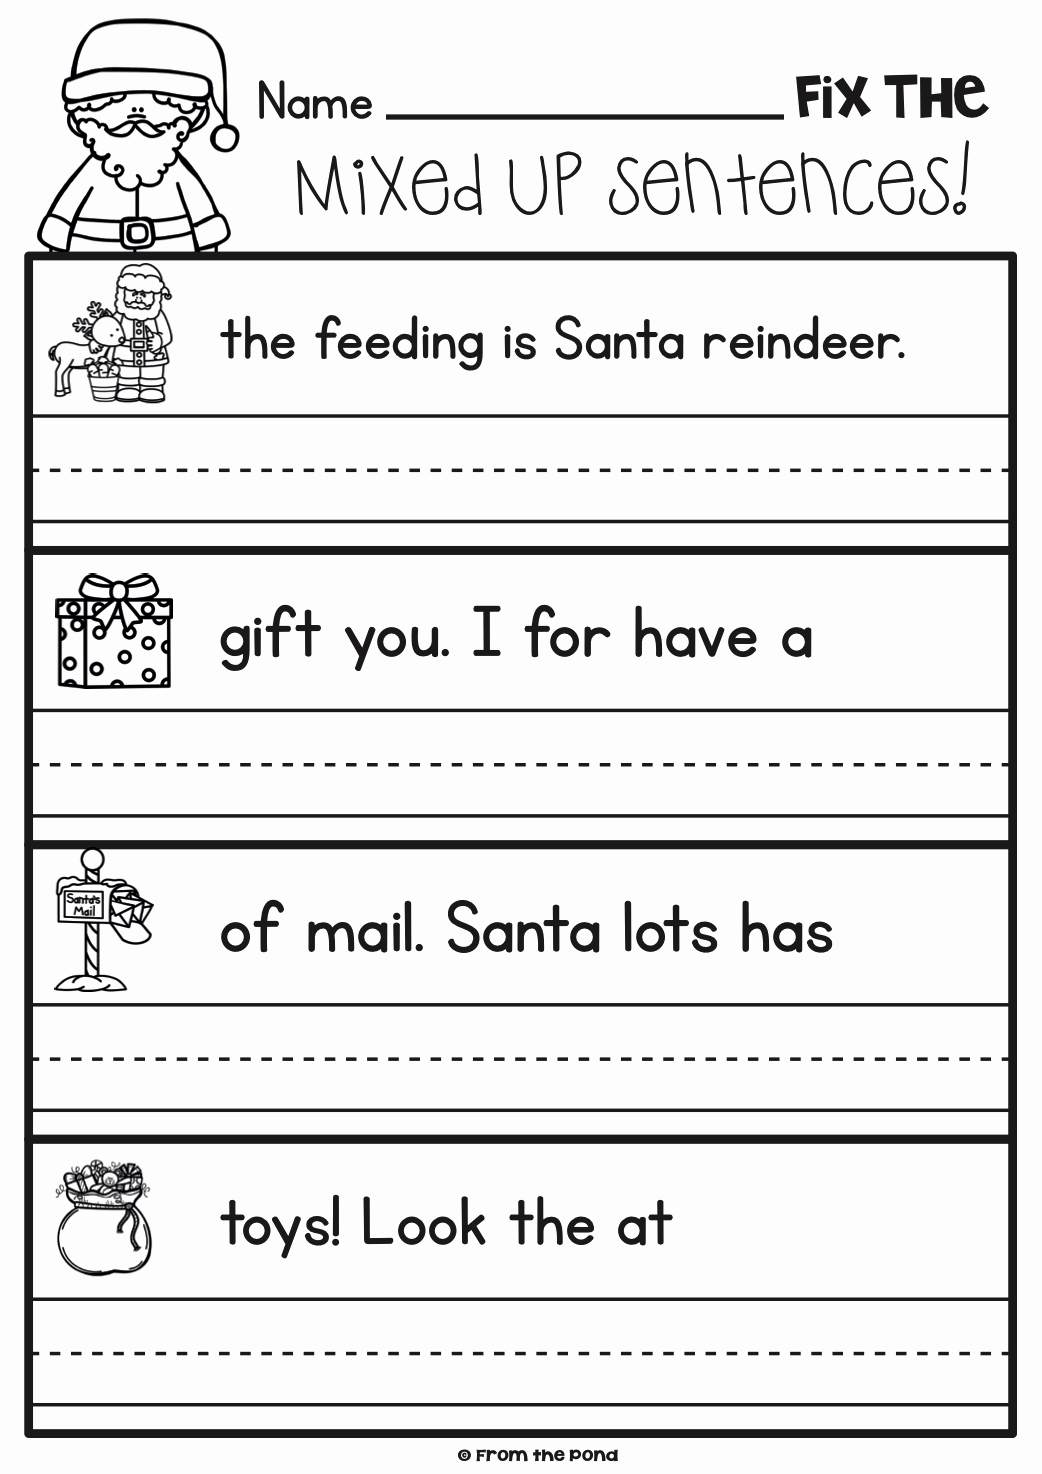 Sentence Worksheets for First Grade Best Of Practice Writing Sentences Worksheets for 1st Grade